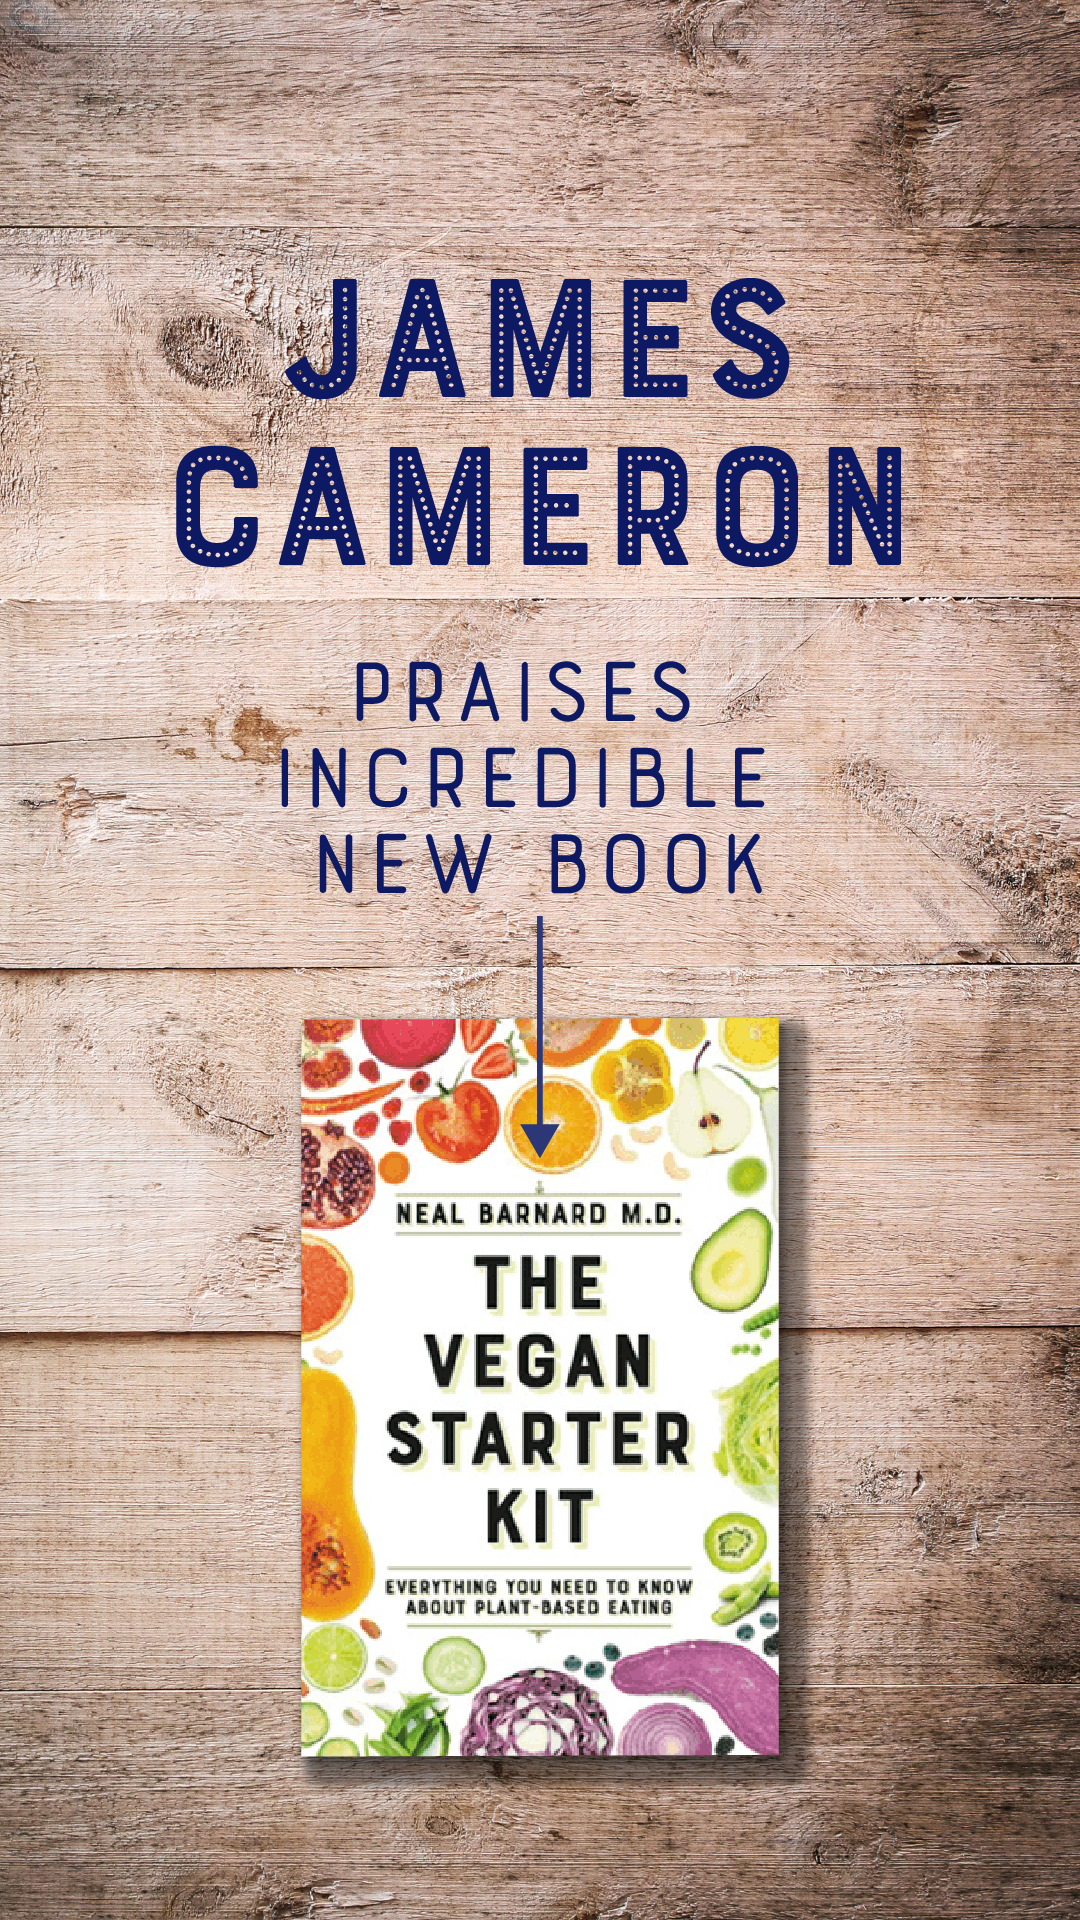 James Cameron Praises Incredible New Book—The Vegan Starter Kit